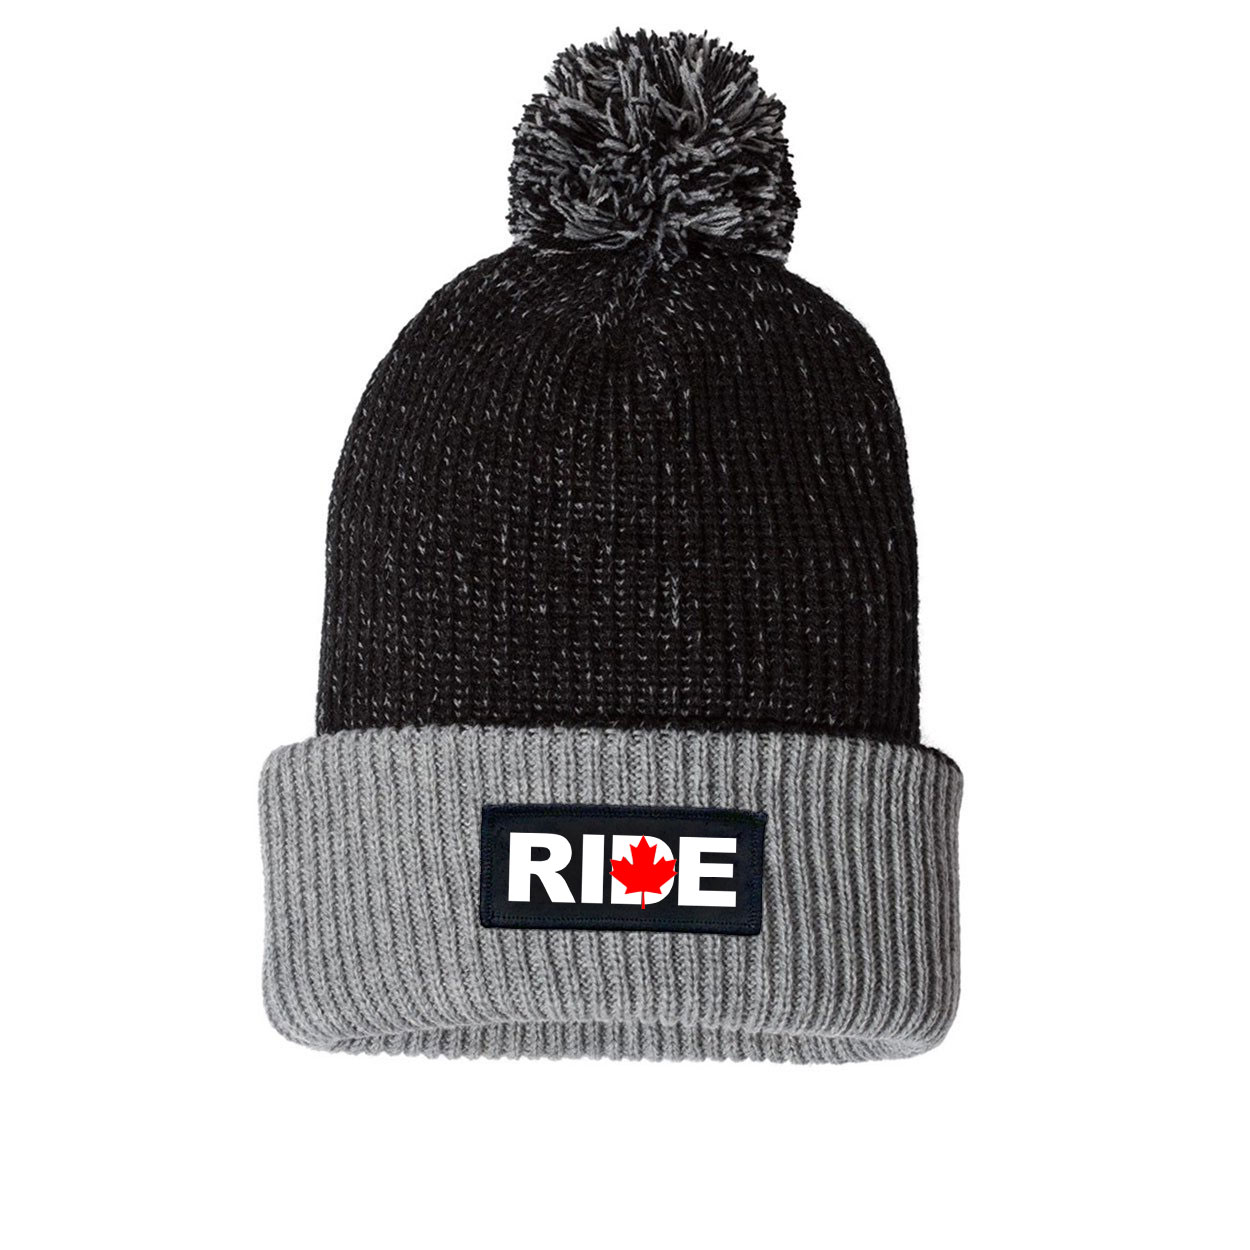 Ride Canada Night Out Woven Patch Roll Up Pom Knit Beanie Black/Gray (White Logo)